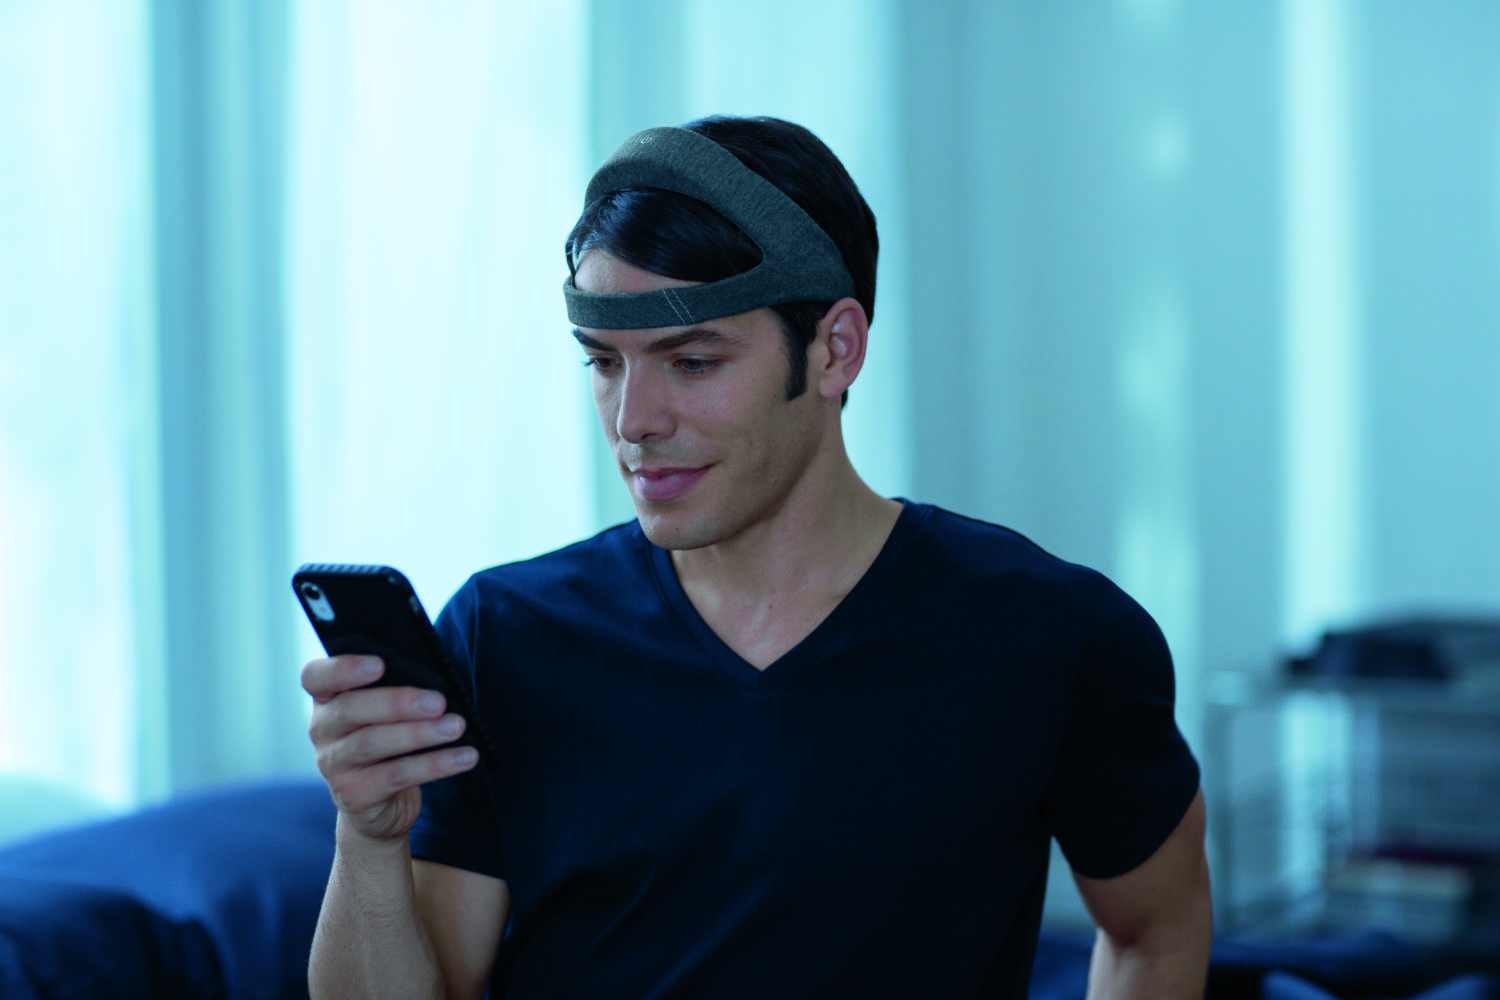 CES 2020: Philips Expands Its Range of Consumer-Focused Digital Health Solutions